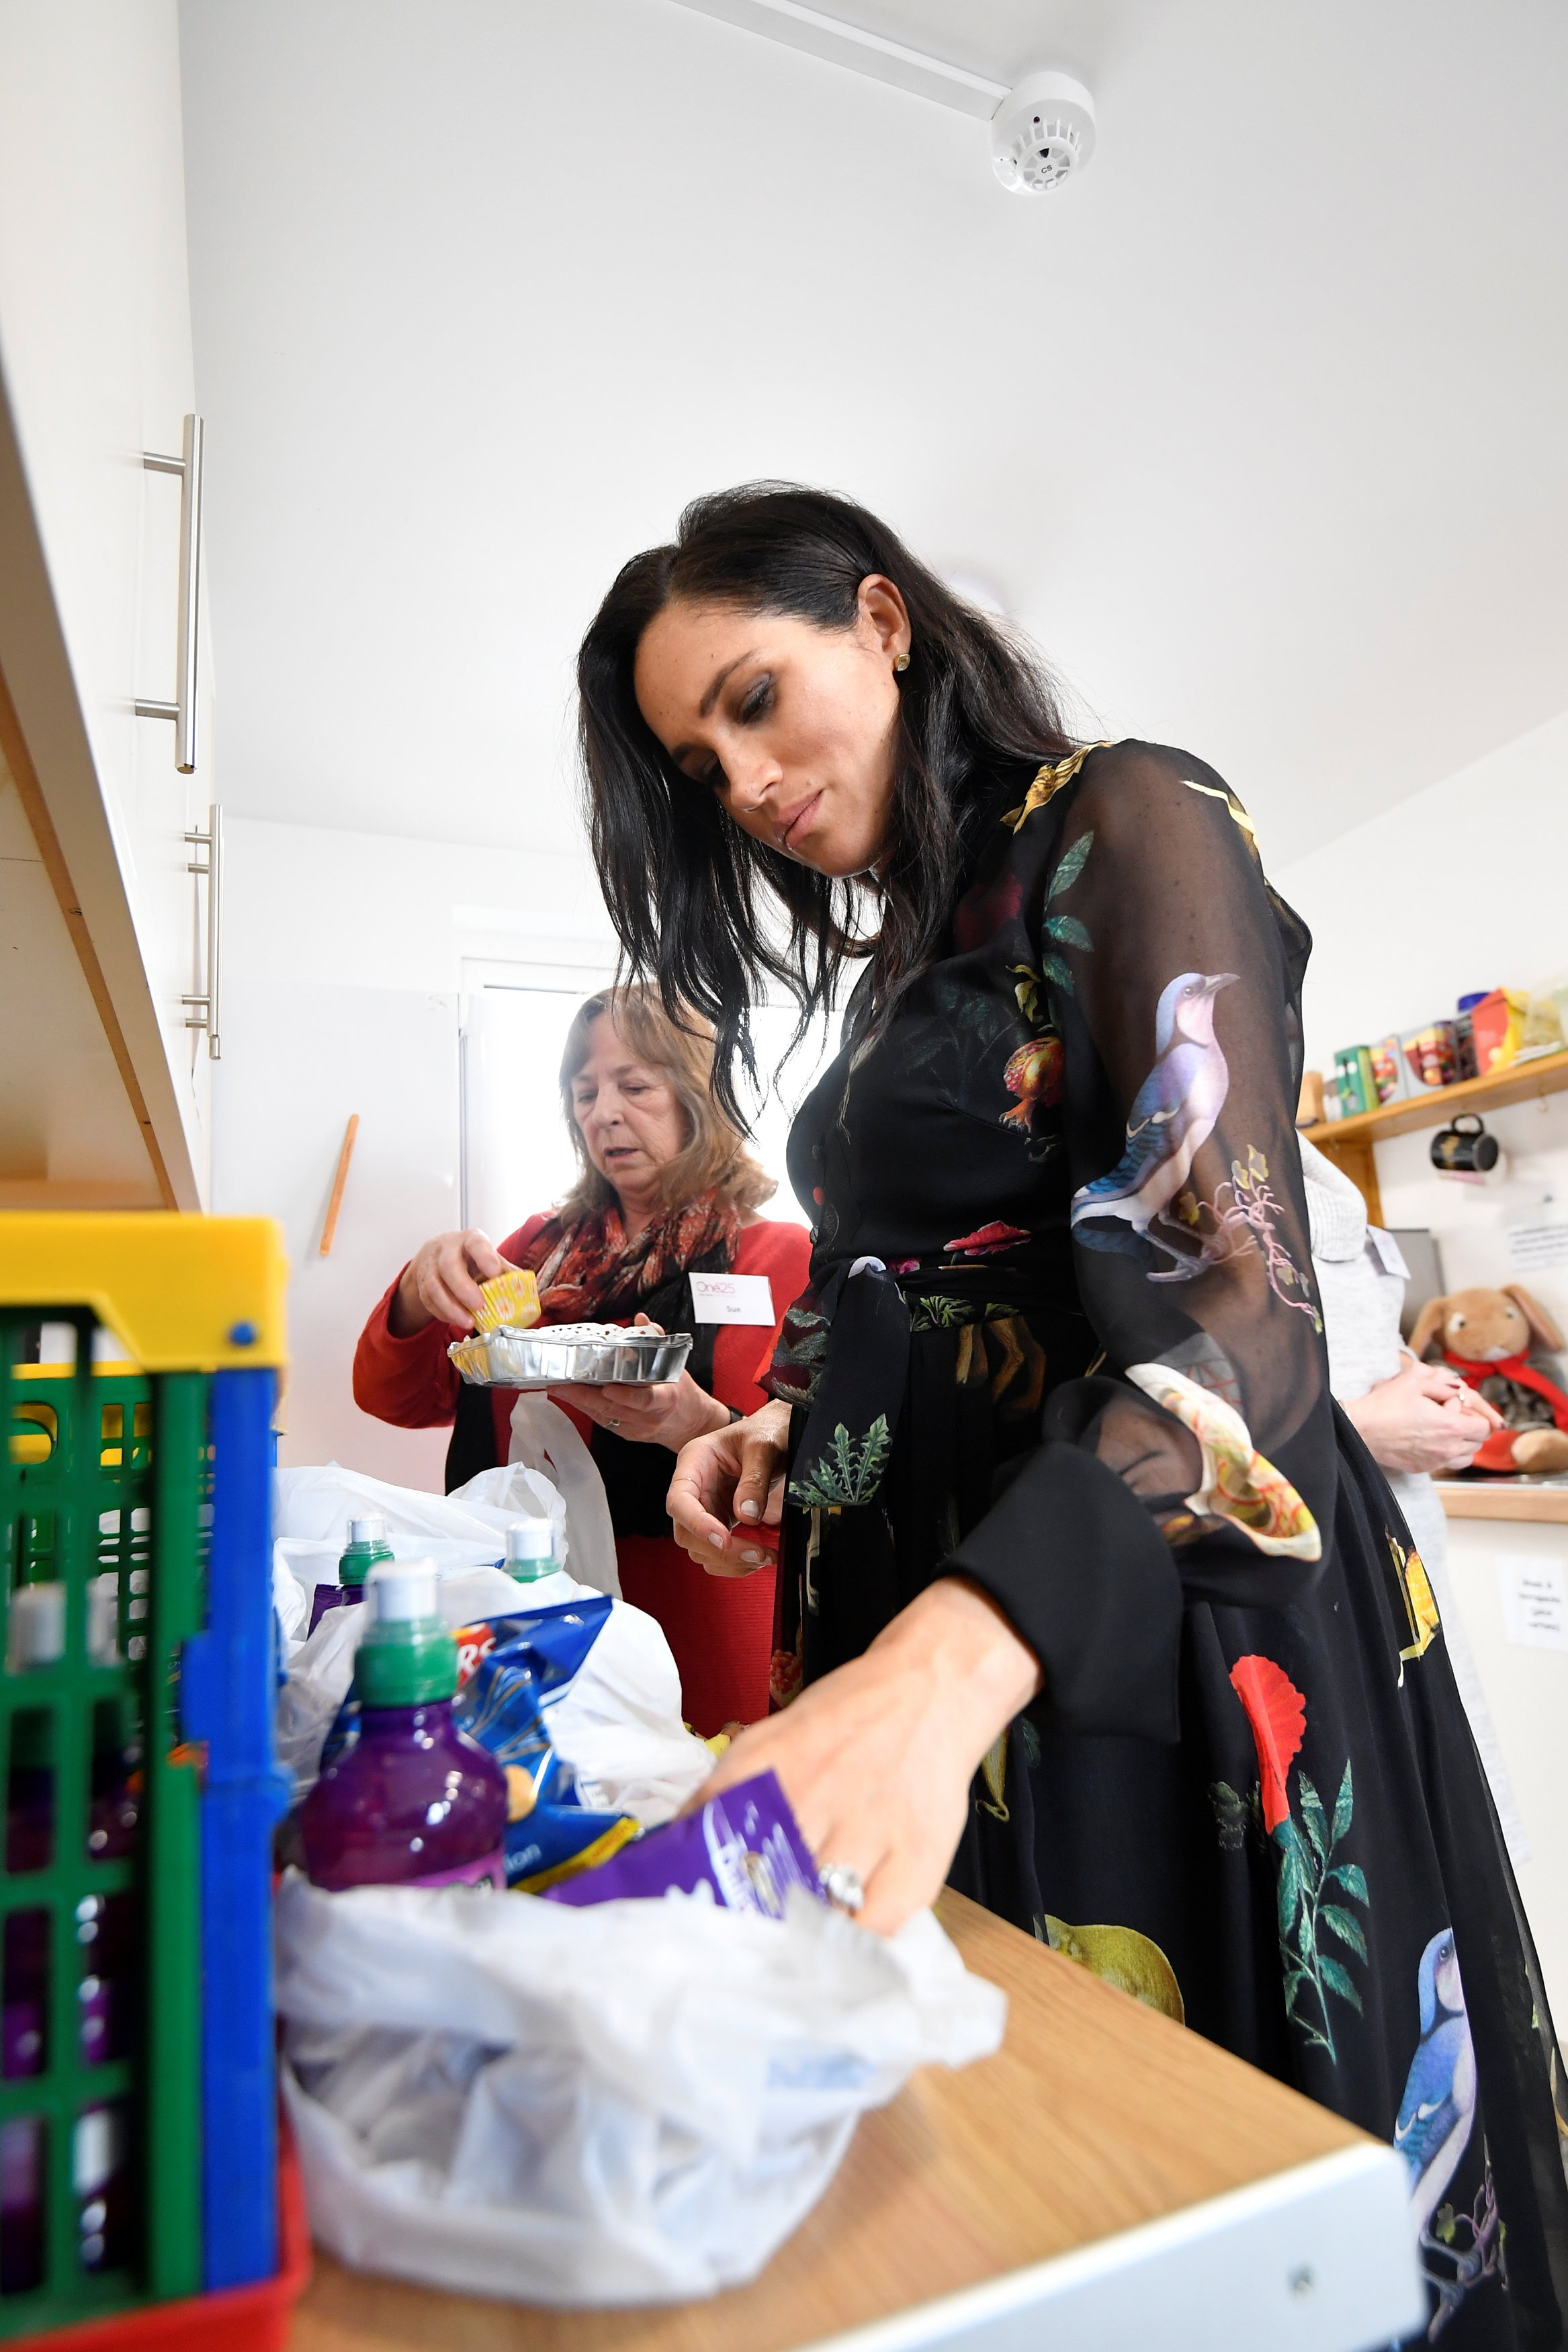 Meghan Markle prepares food parcels for a charity outreach van in Bristol, England on February 1, 2019 | Photo: Getty Images